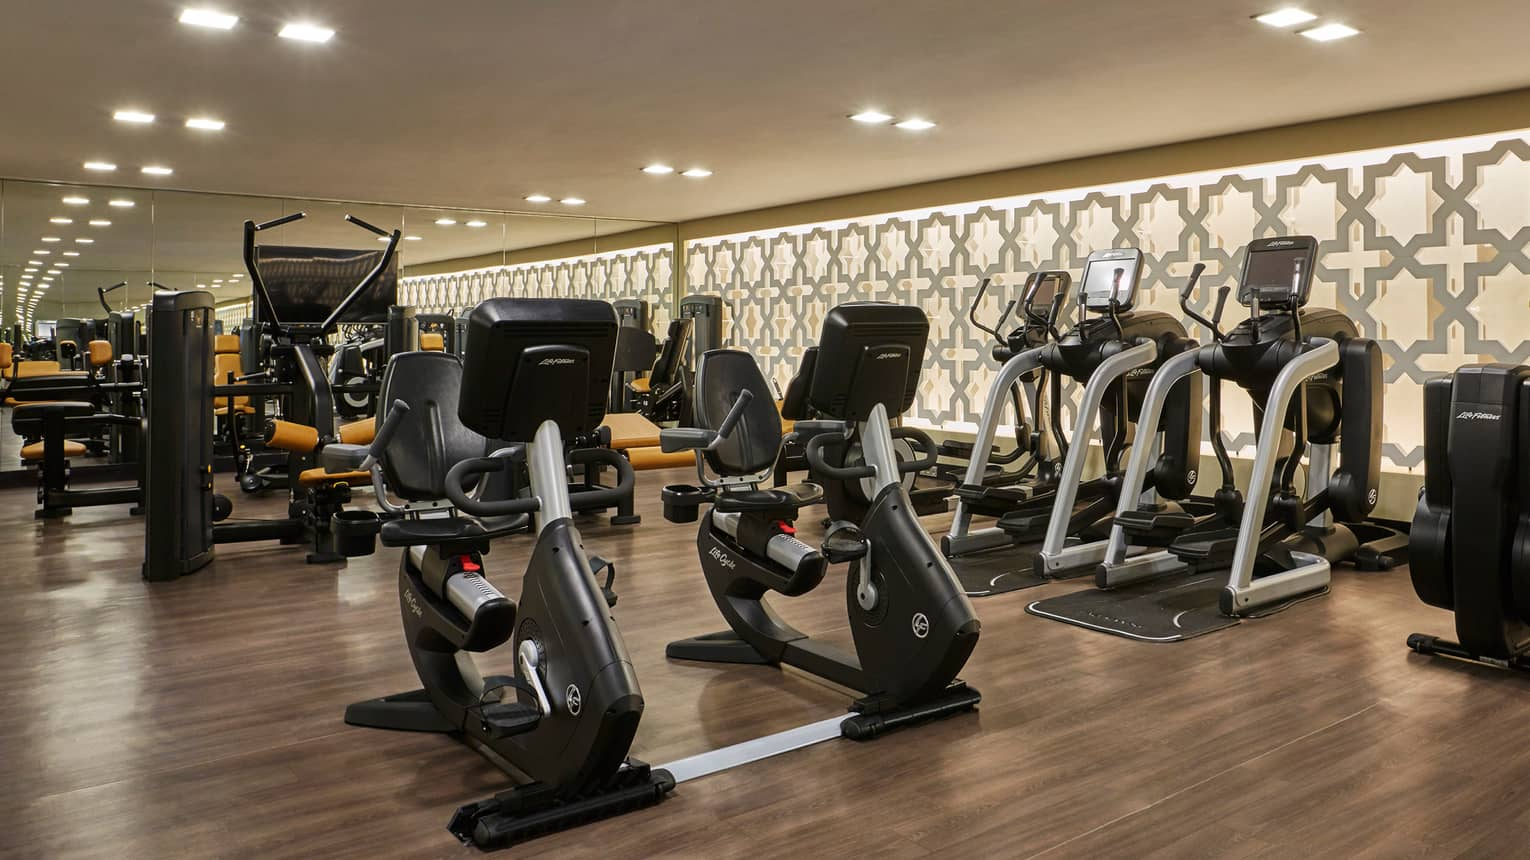 Rows of cardio machines in dimly-lit fitness room with wood floors